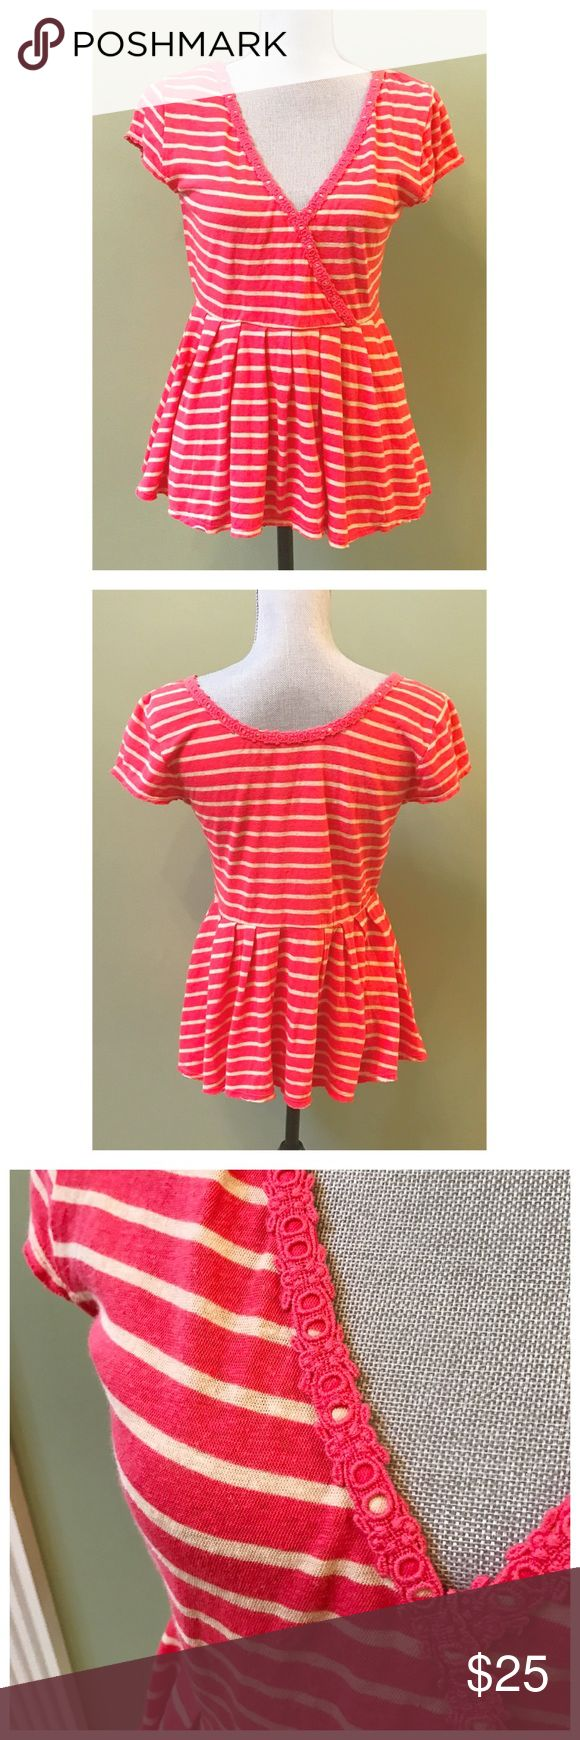 Free People Striped Babydoll Top Excellent condition! Flattering Babydoll shape with sexy v-neck. Only flaw is that the inside brand label has black marker on it. Free People Tops